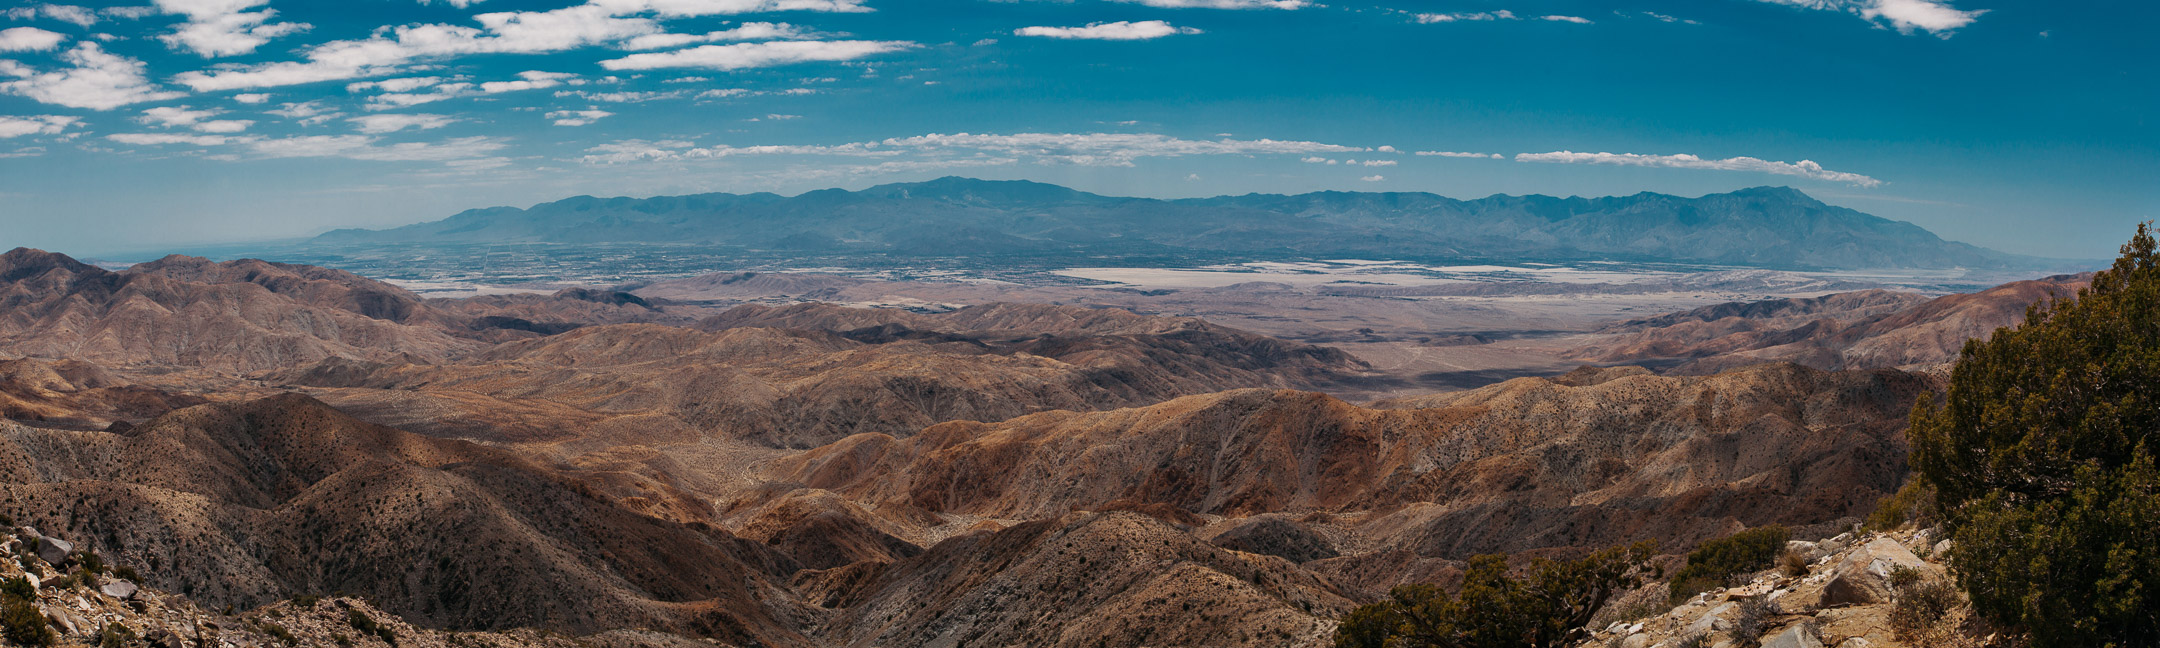 A panoramic taken from Keys View atop Joshua Tree National Park